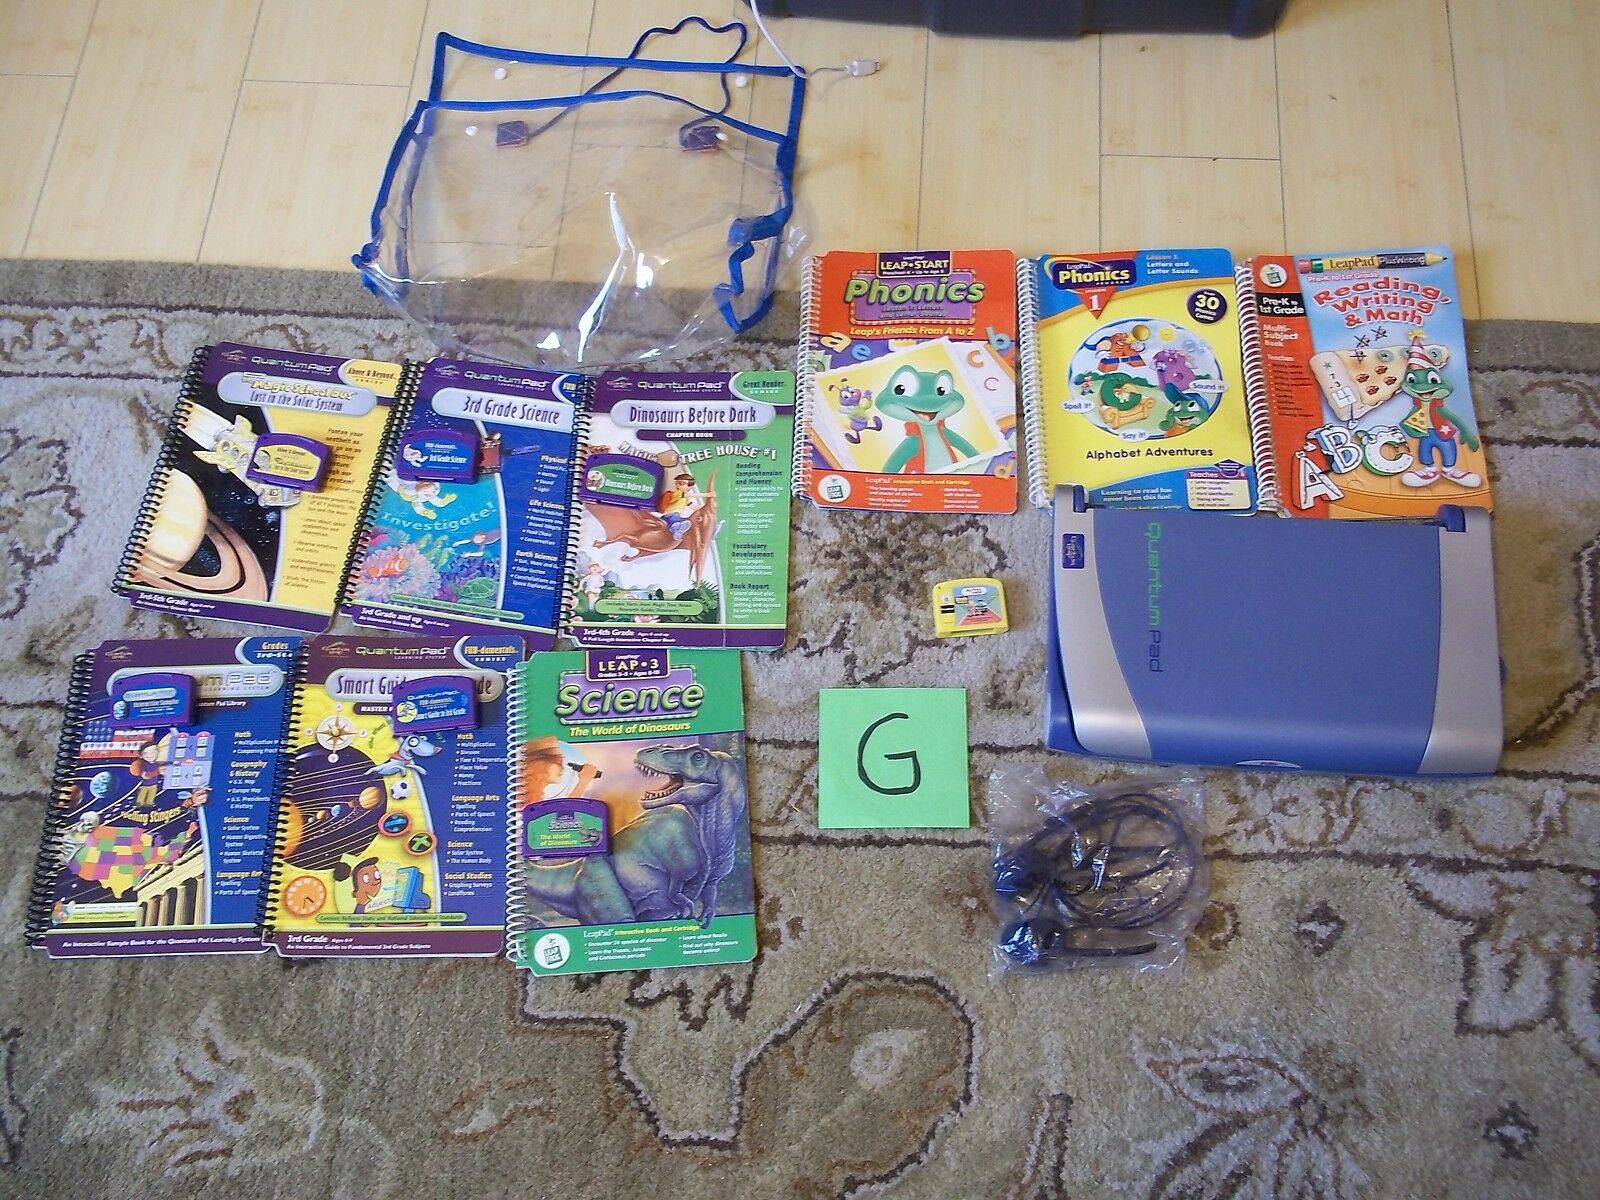 QUANTUM PAD LEARNING SYSTEM W 9 BOOKS 7 CARTRIDGES HEADPHONES & CARRY CASE